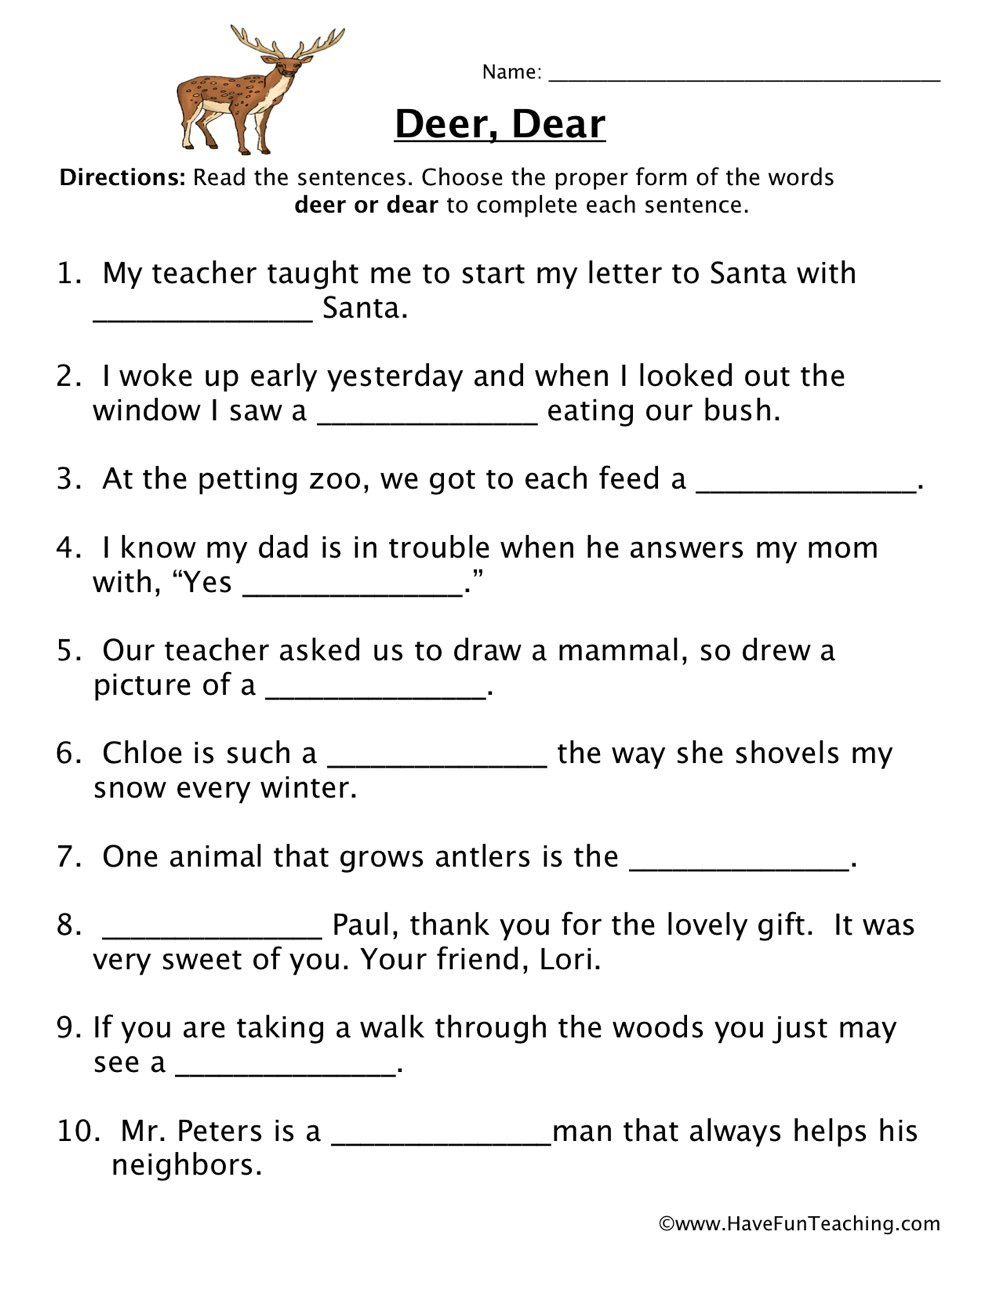 Homophones Worksheet 6th Grade Deer Dear Homophones Worksheet